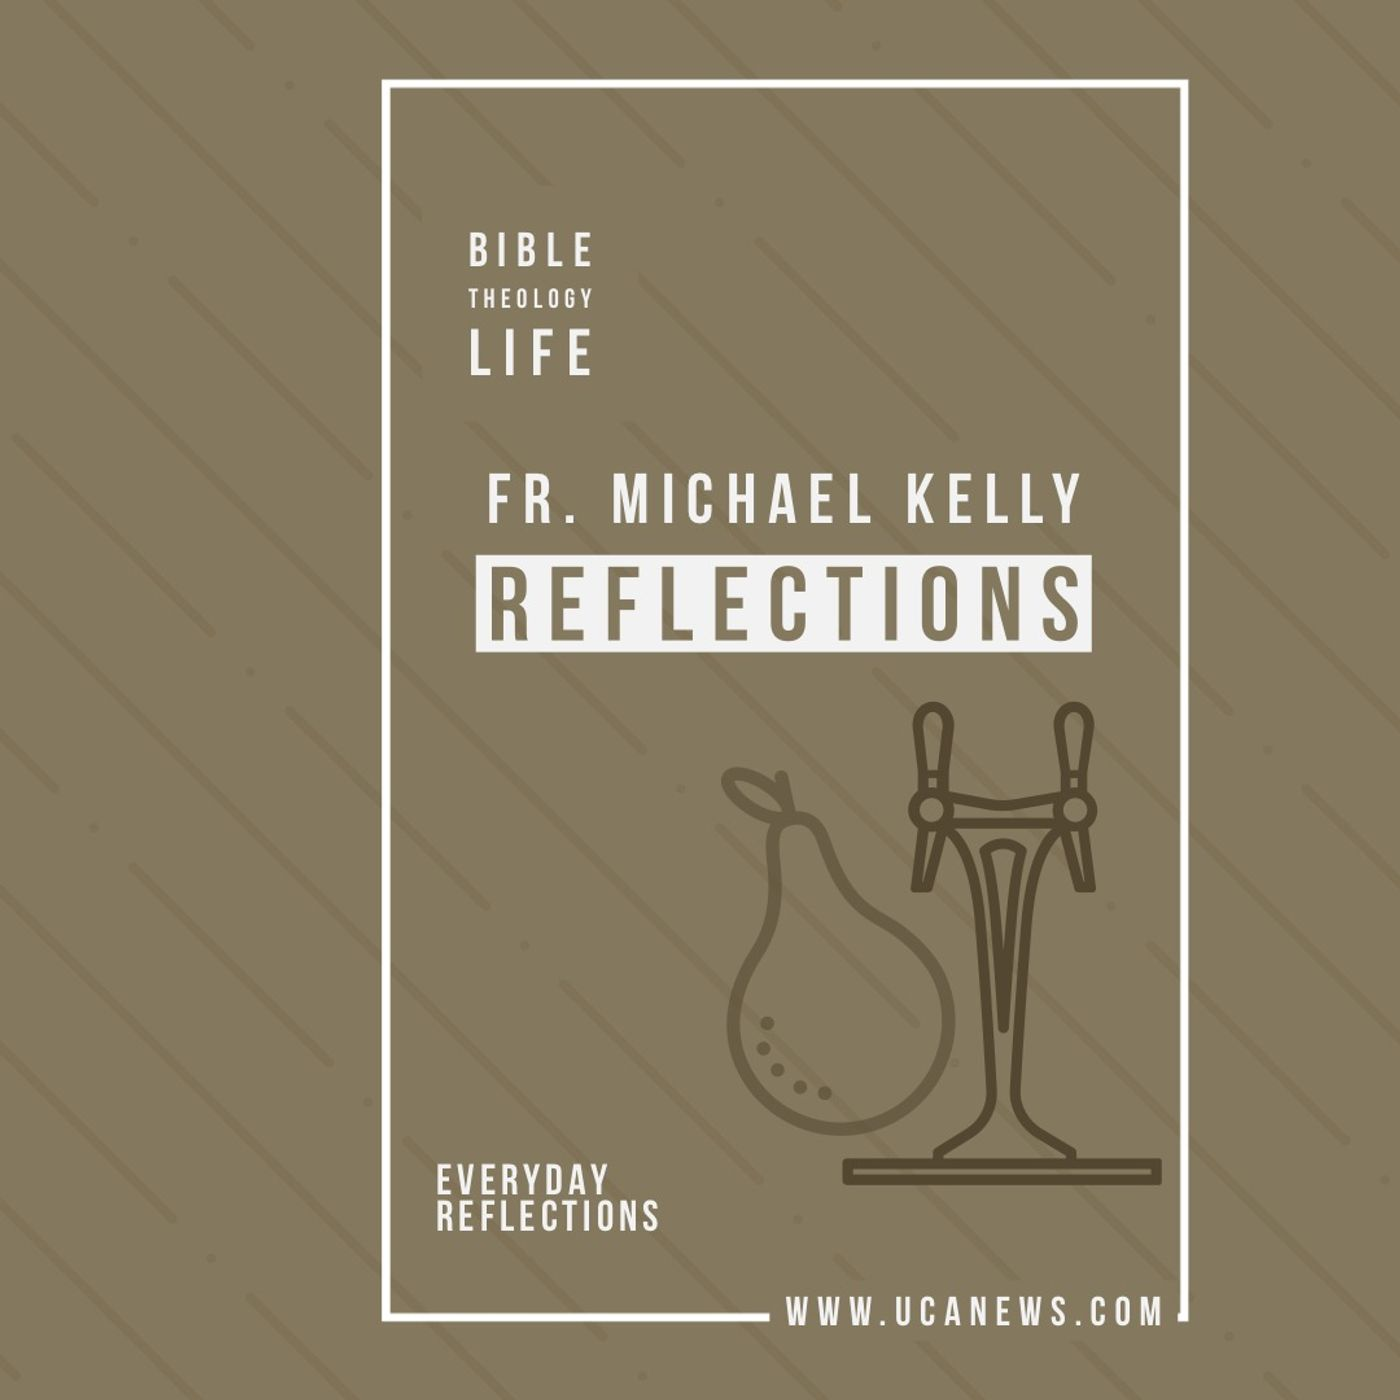 Reflections with Fr. Michael Kelly - Thursday 8 Apr, 2021